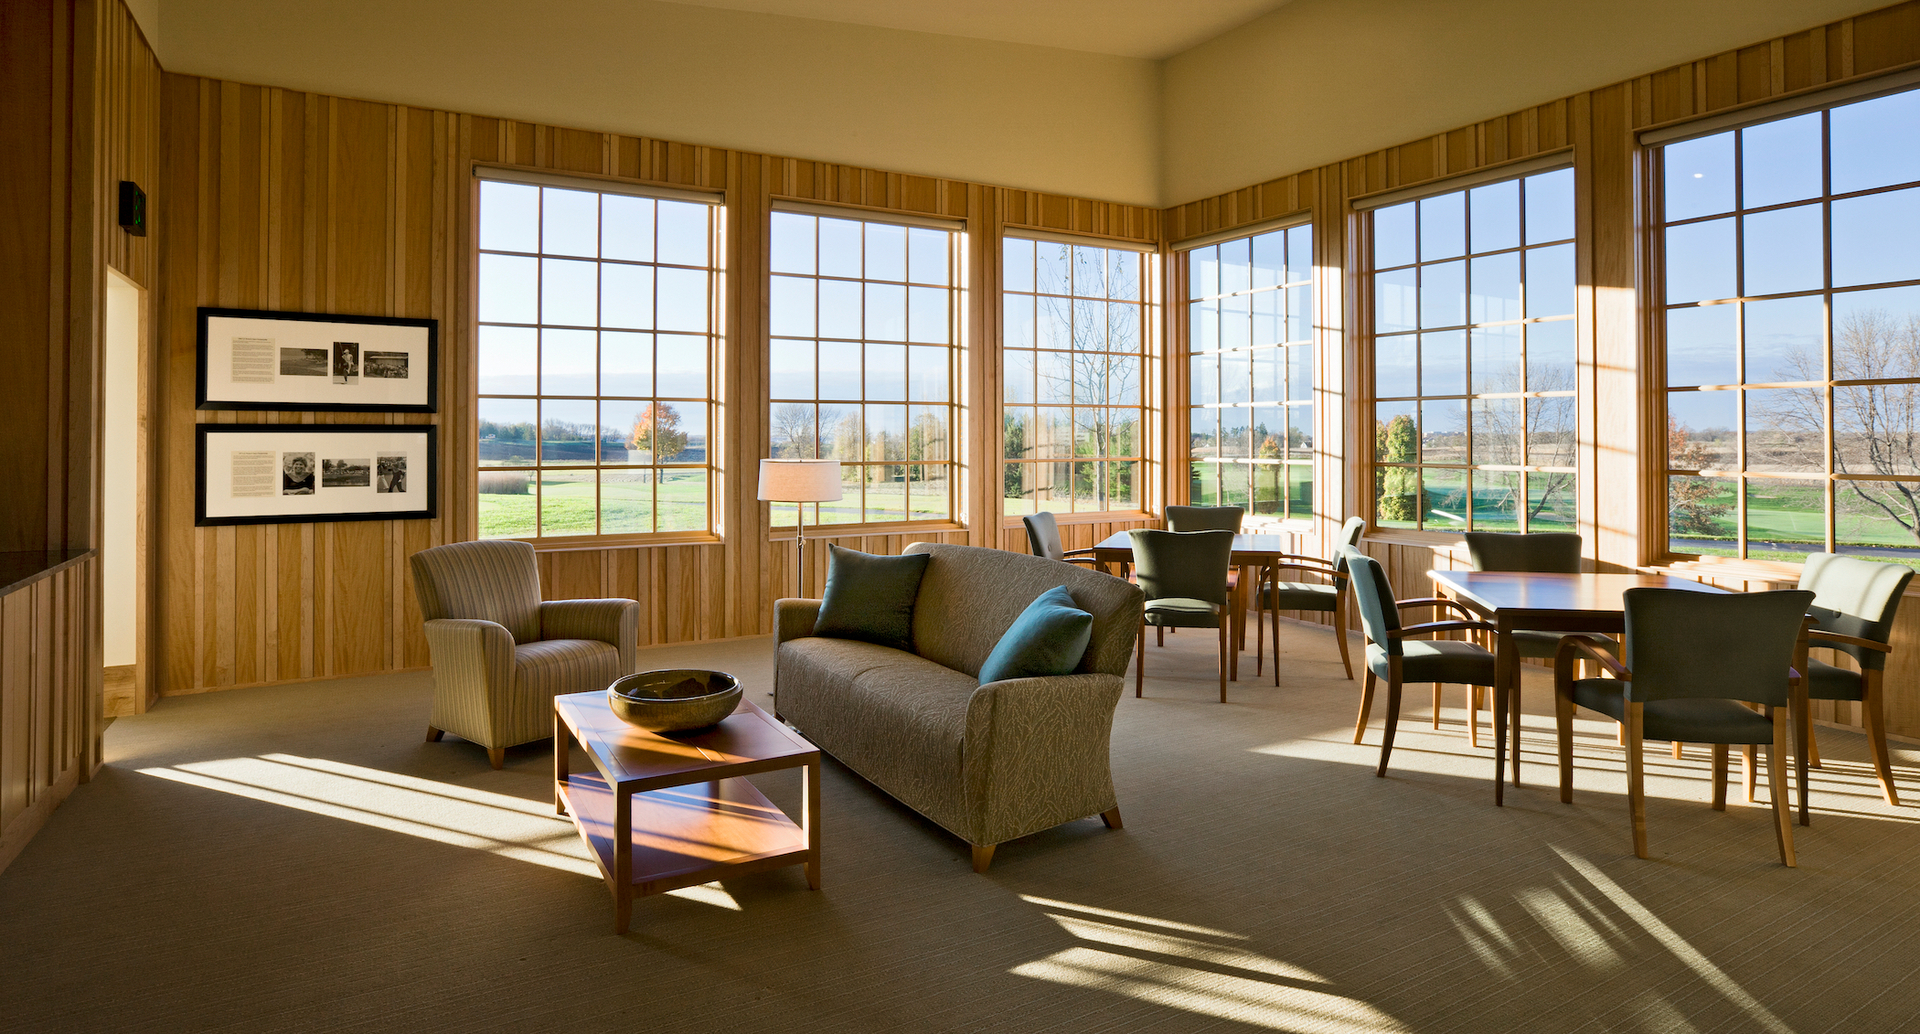 The natural wood interior of the Hazeltine National Golf Course Clubhouse featuring the Andersen® A-Series windows to complement the overall building theme.